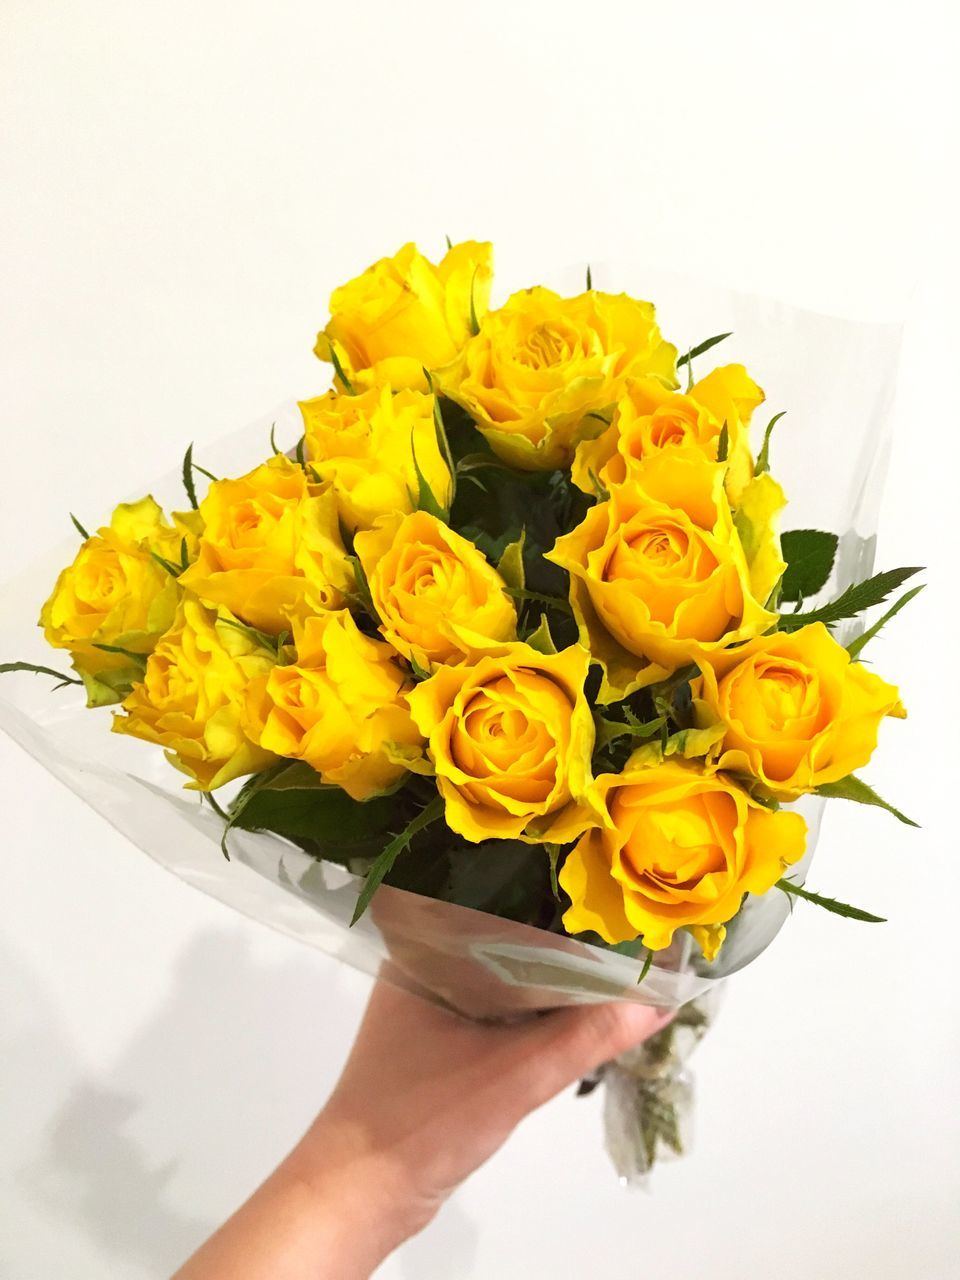 flower, human hand, bouquet, freshness, human body part, holding, petal, yellow, one person, flower arrangement, flower head, fragility, beauty in nature, real people, rose - flower, white background, women, gift, close-up, nature, bride, indoors, day, florist, people